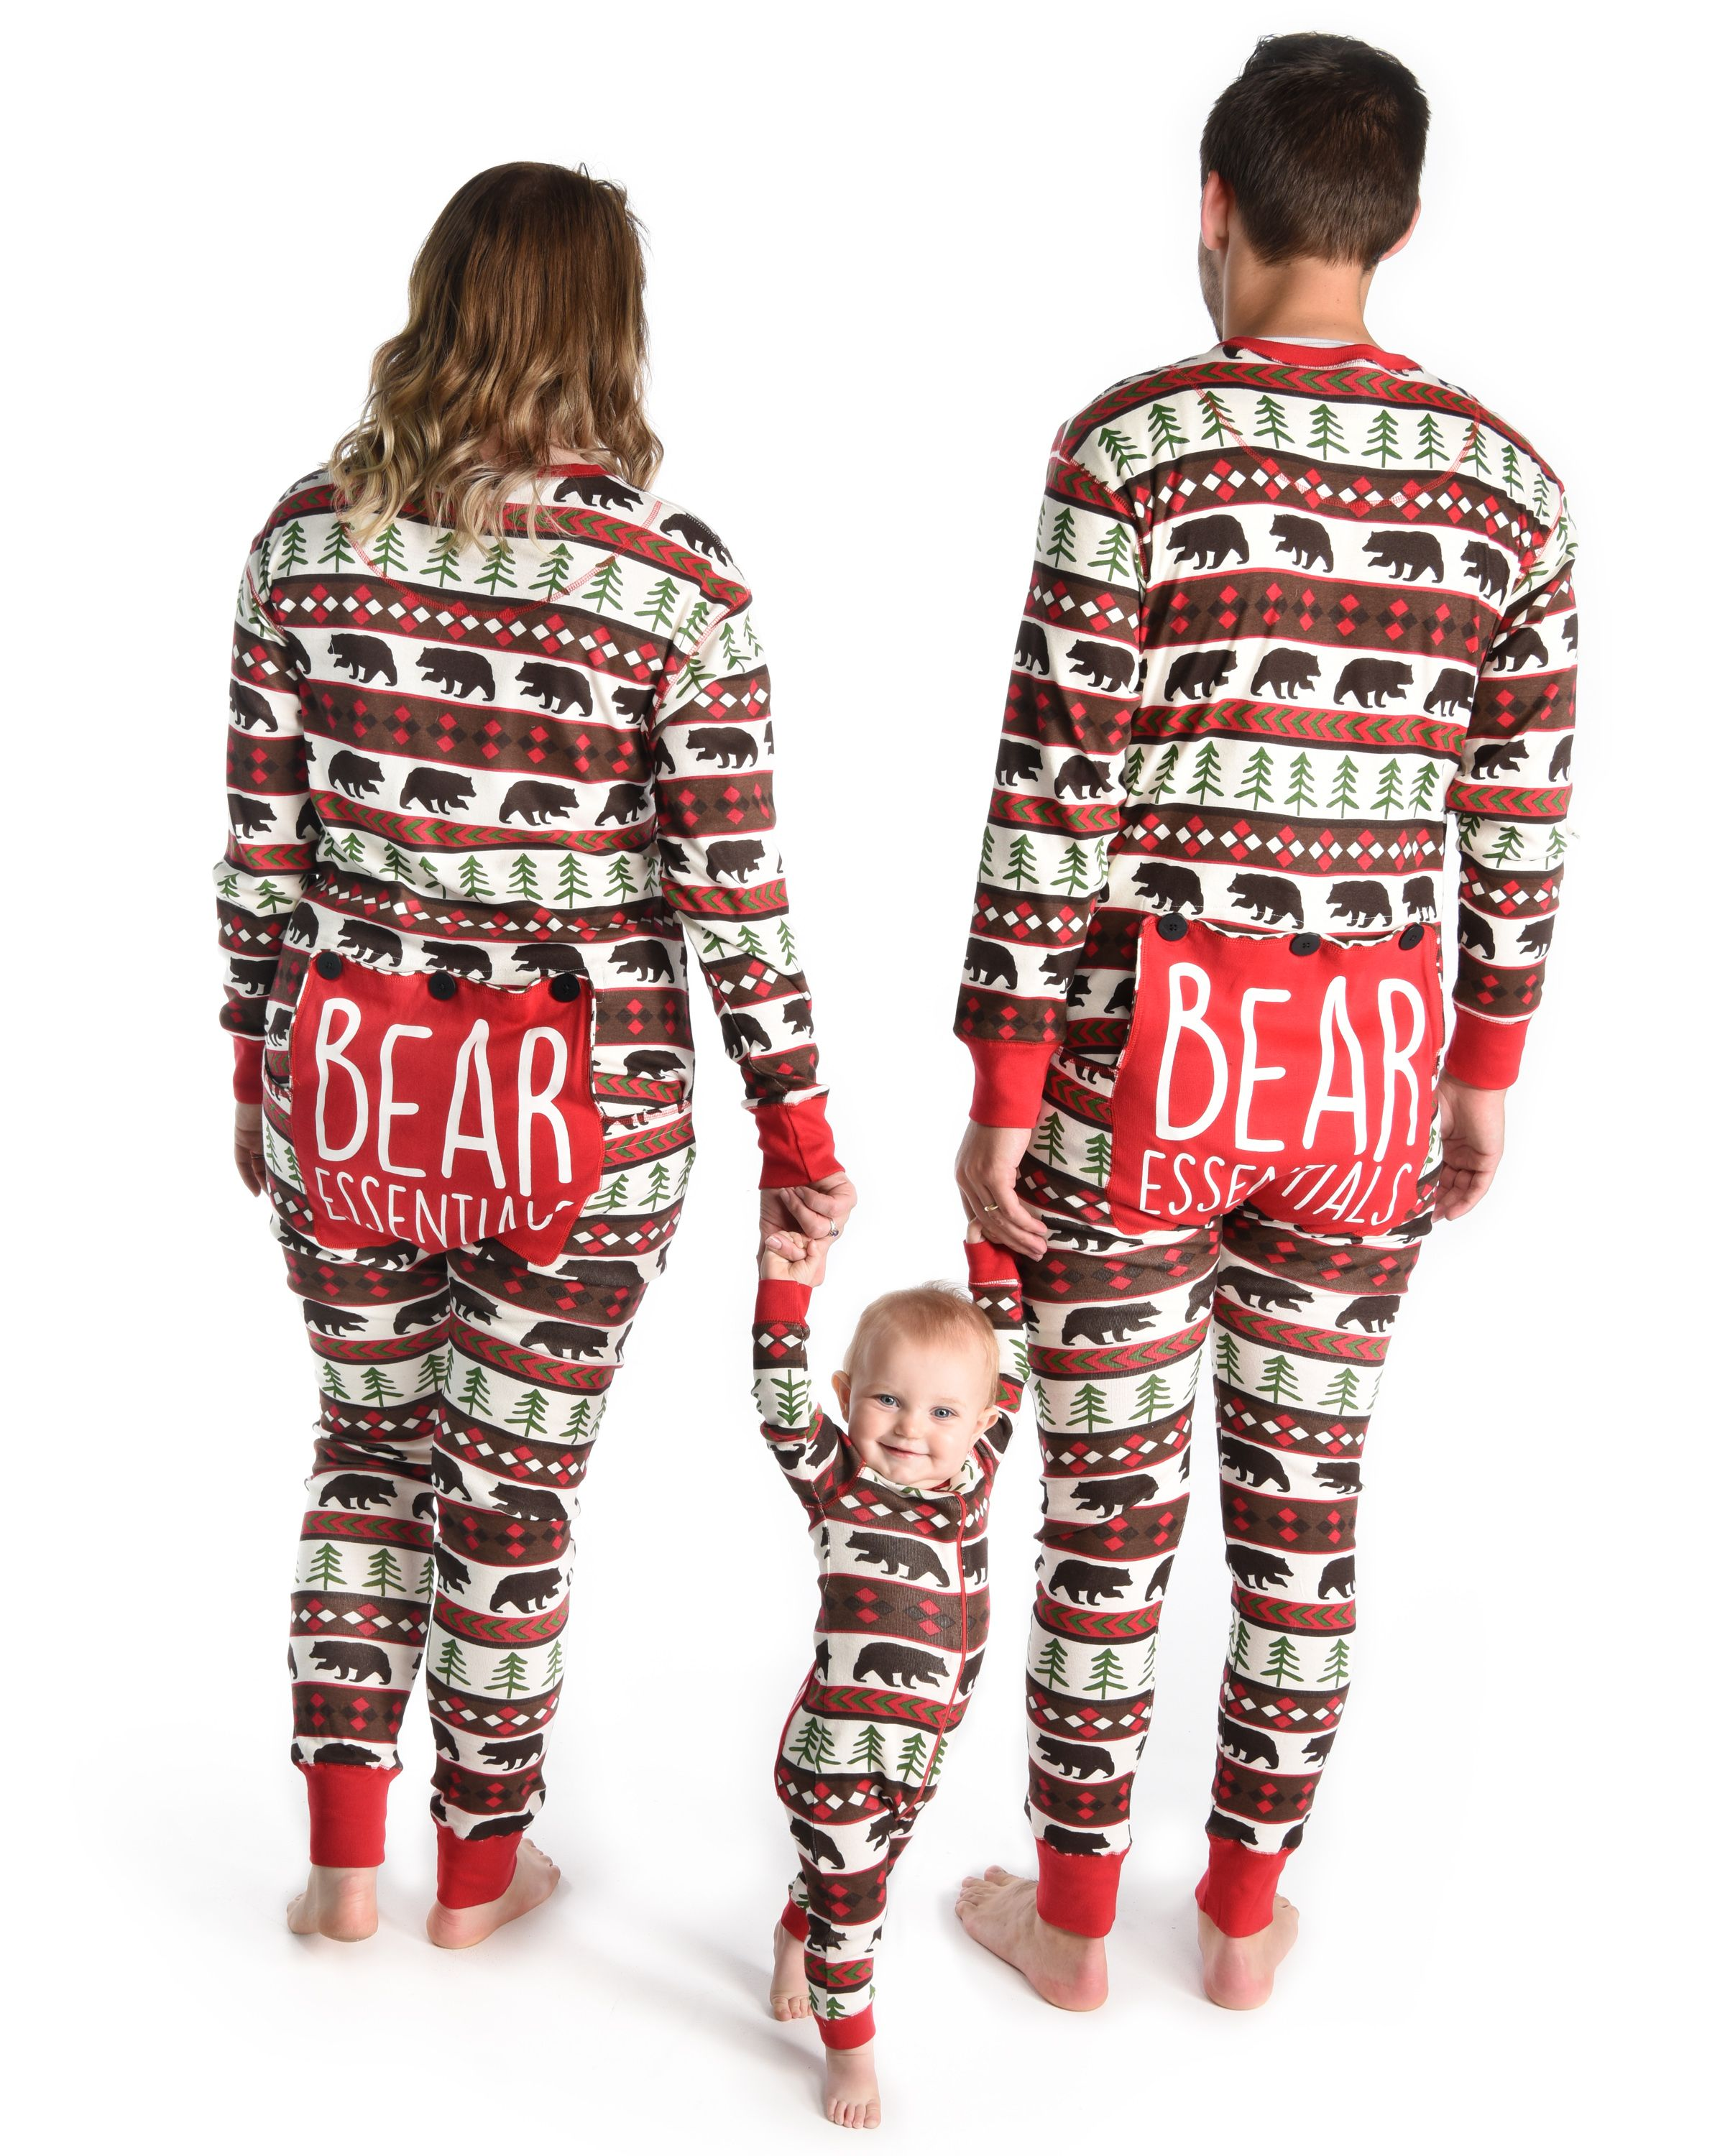 7a83b625f2 Matching Pajamas!!! Fun pajama sets for the whole family! Get together with  coordinating pjs for every men